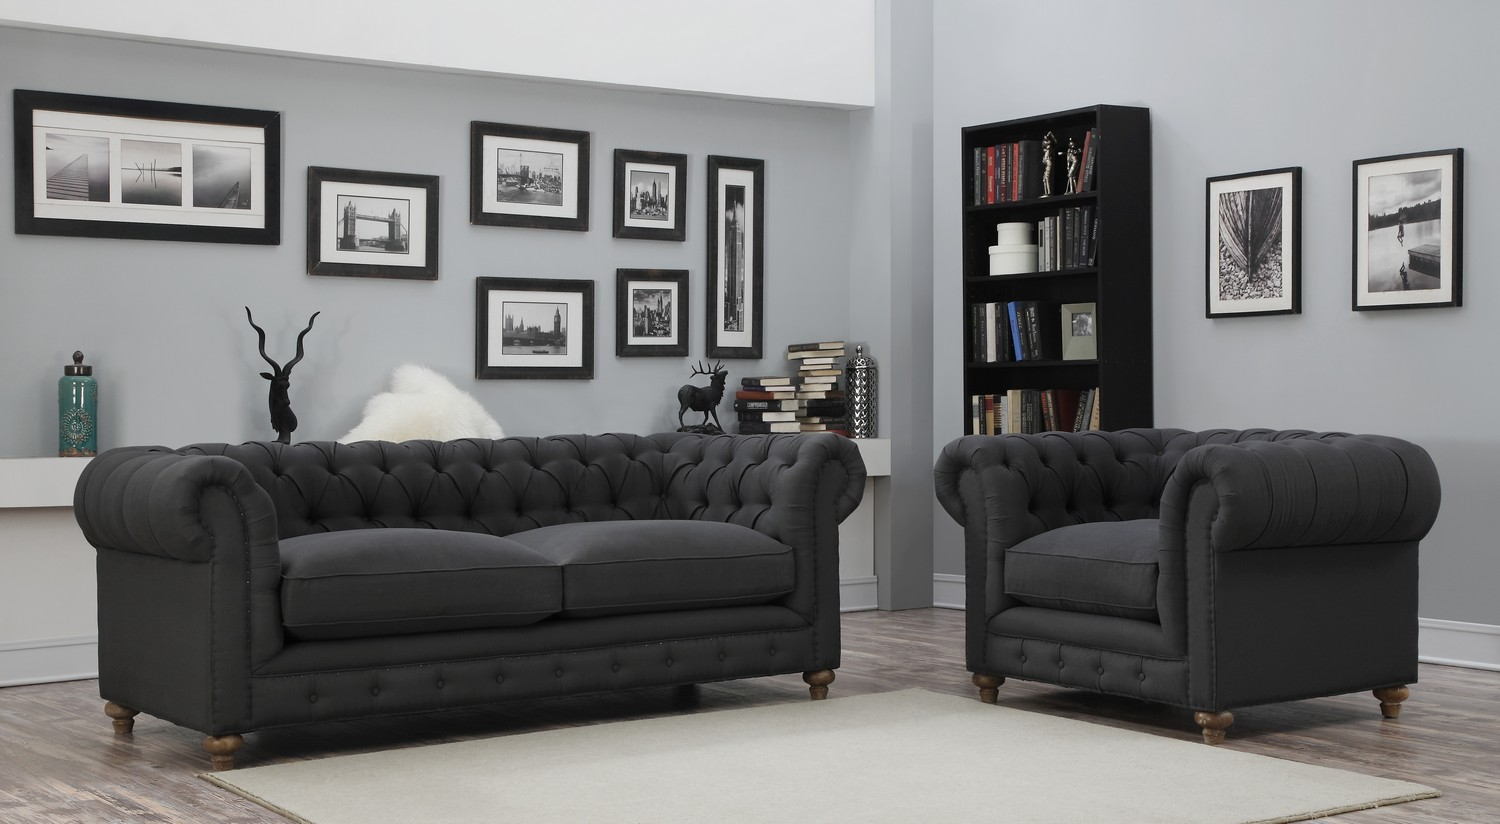 Tov furniture oxford grey linen living room set c43 s34 at homelement com